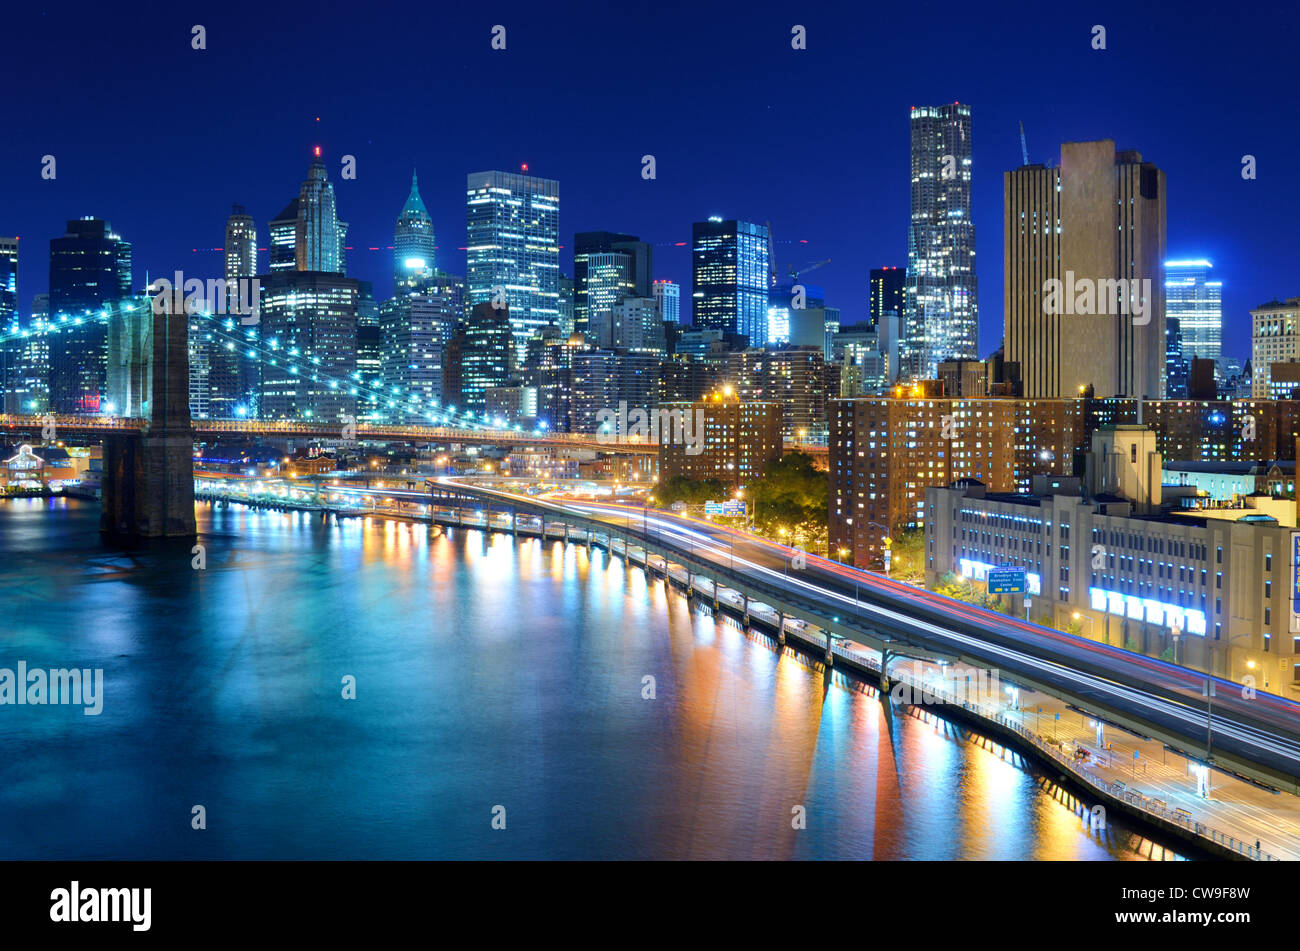 View of the financial district of Manhattan at night in New York City. - Stock Image